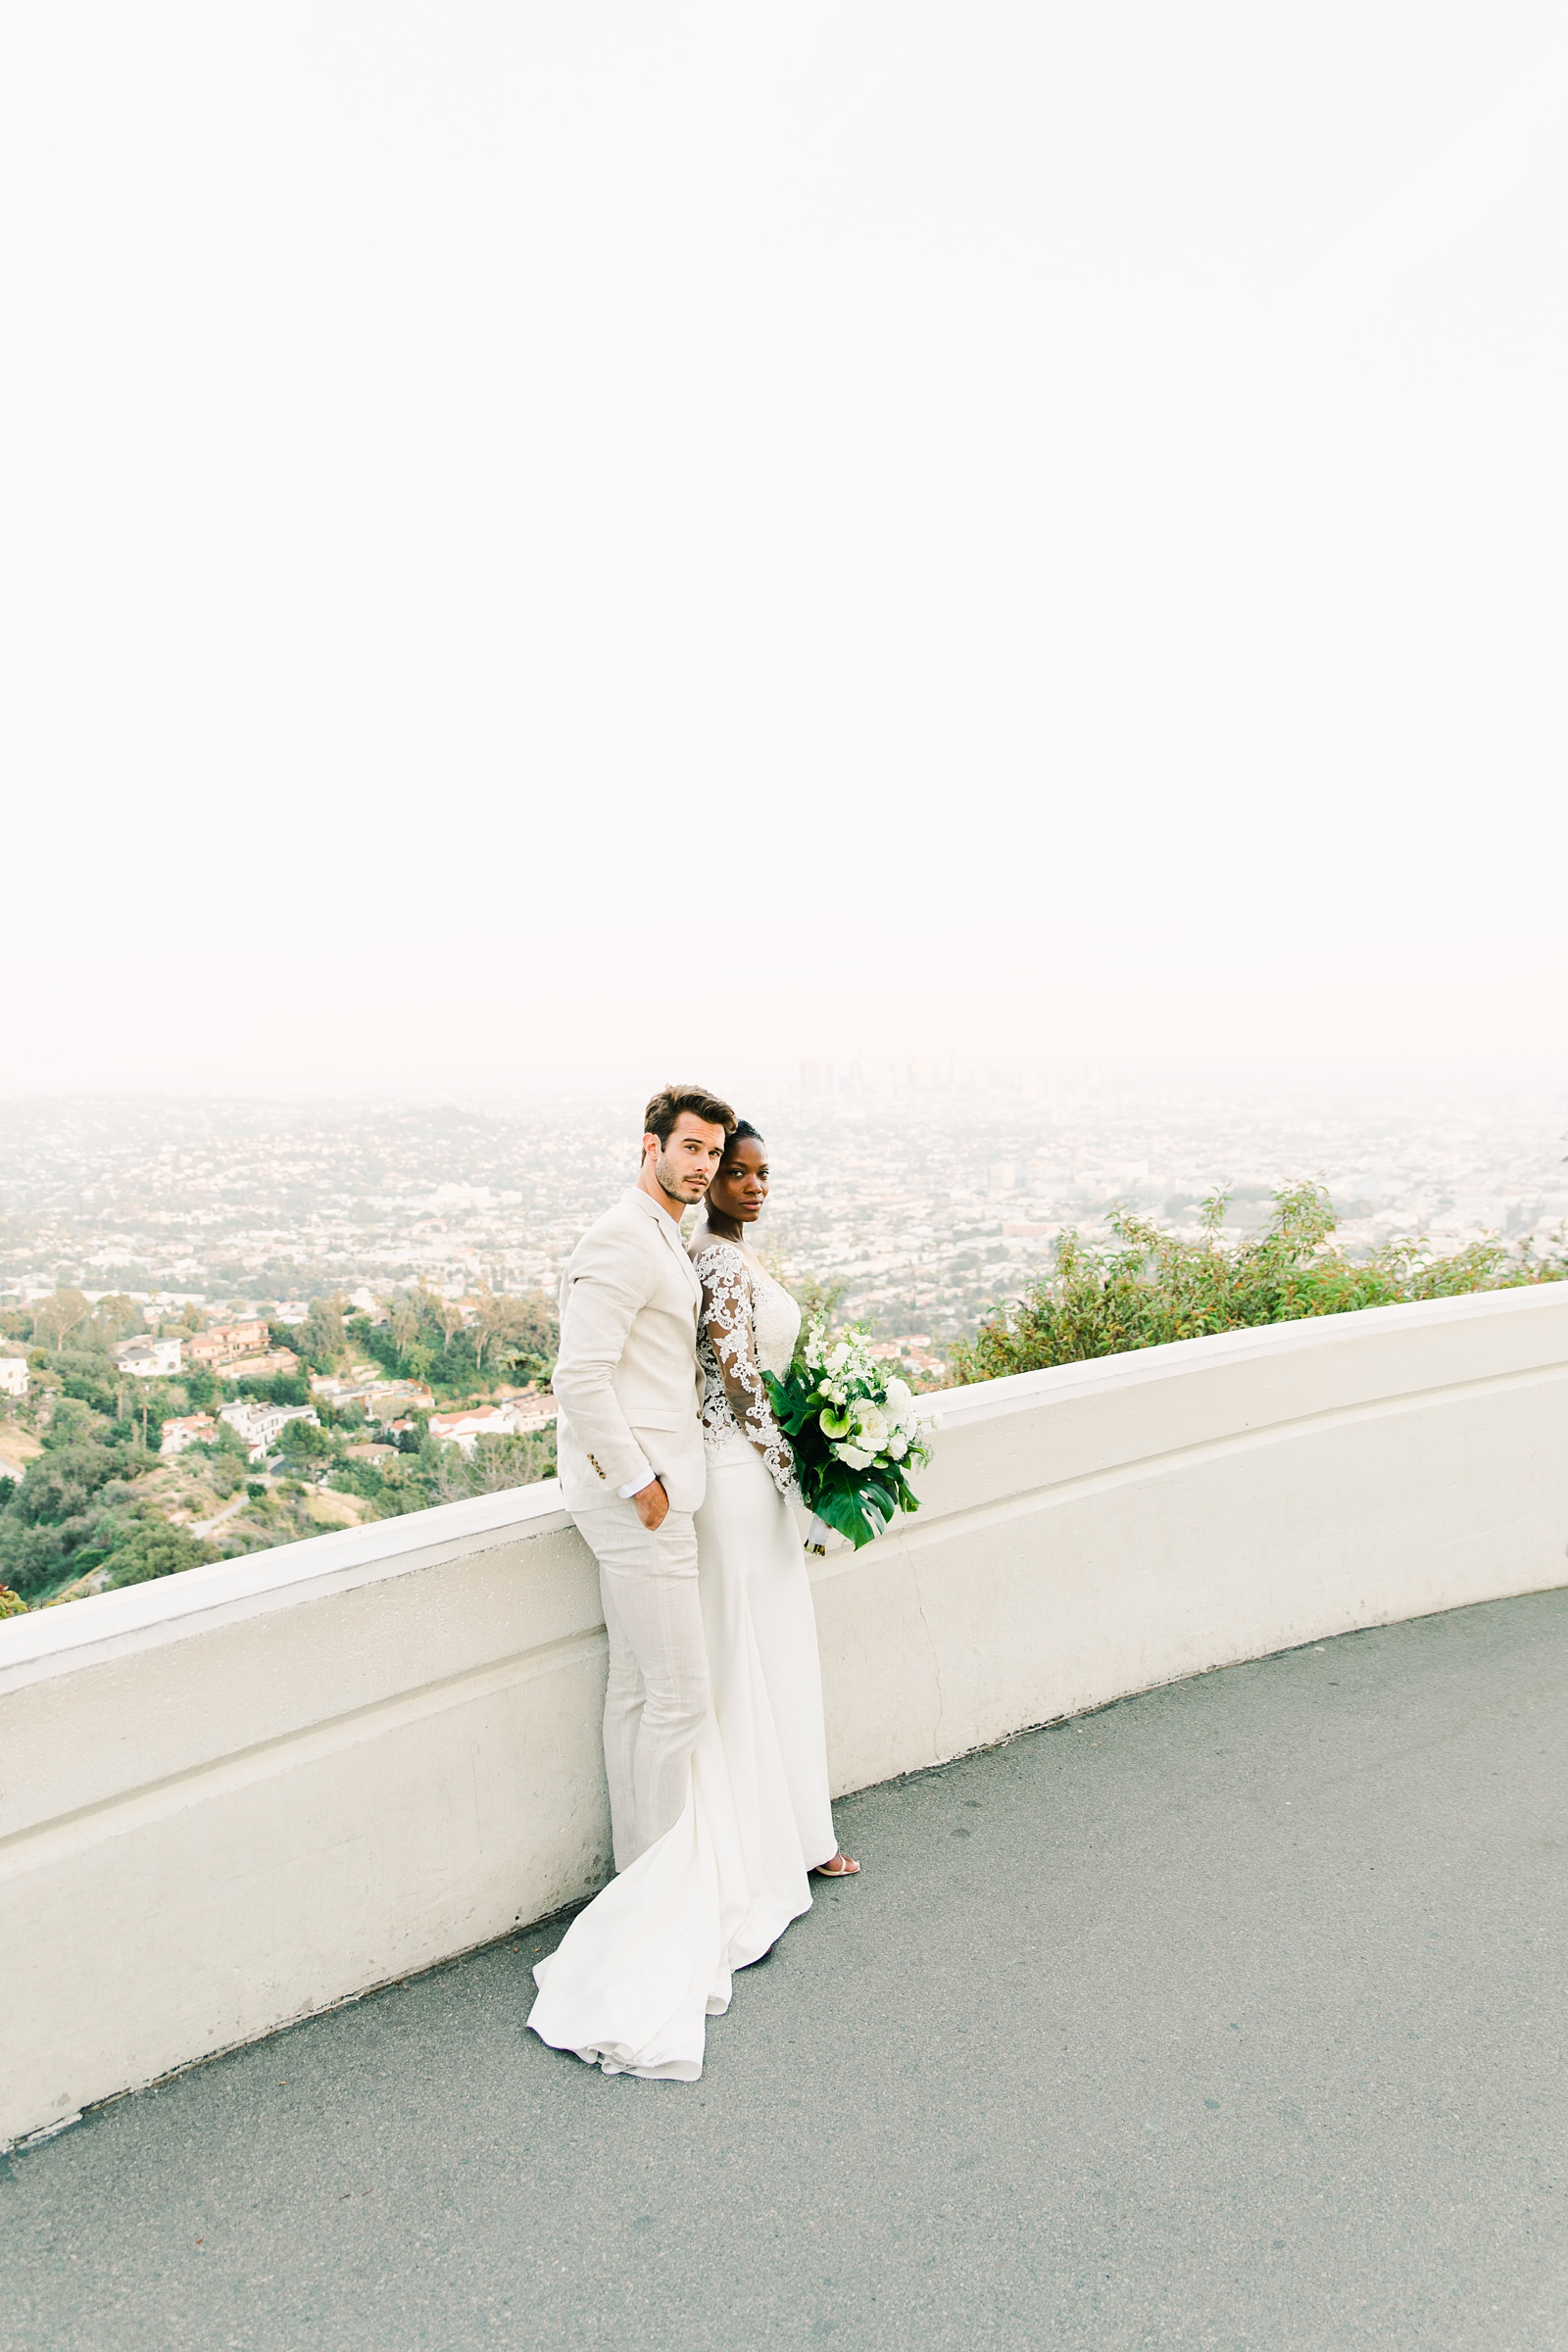 Modern timeless wedding photography at the Griffith Observatory in Los Angeles, California destination wedding photographer, bride and groom with view of city